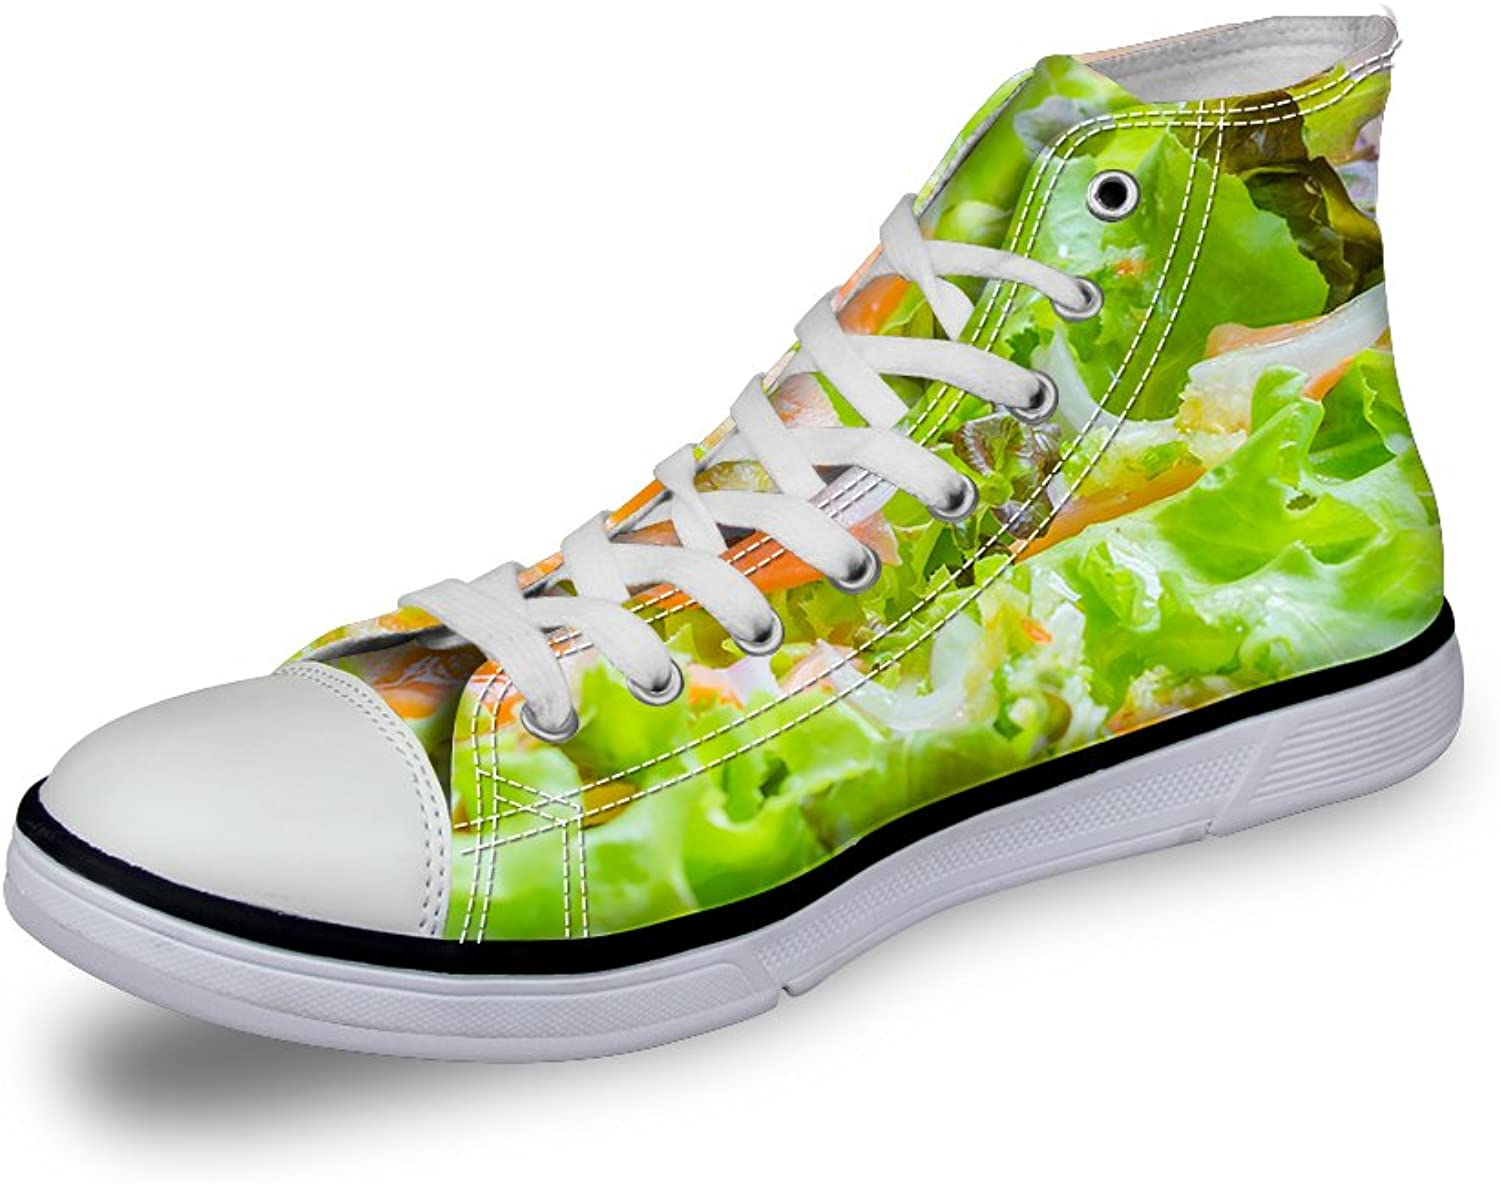 Frestree Vintage High Top Sneakers for Women High Top Lace Casual shoes